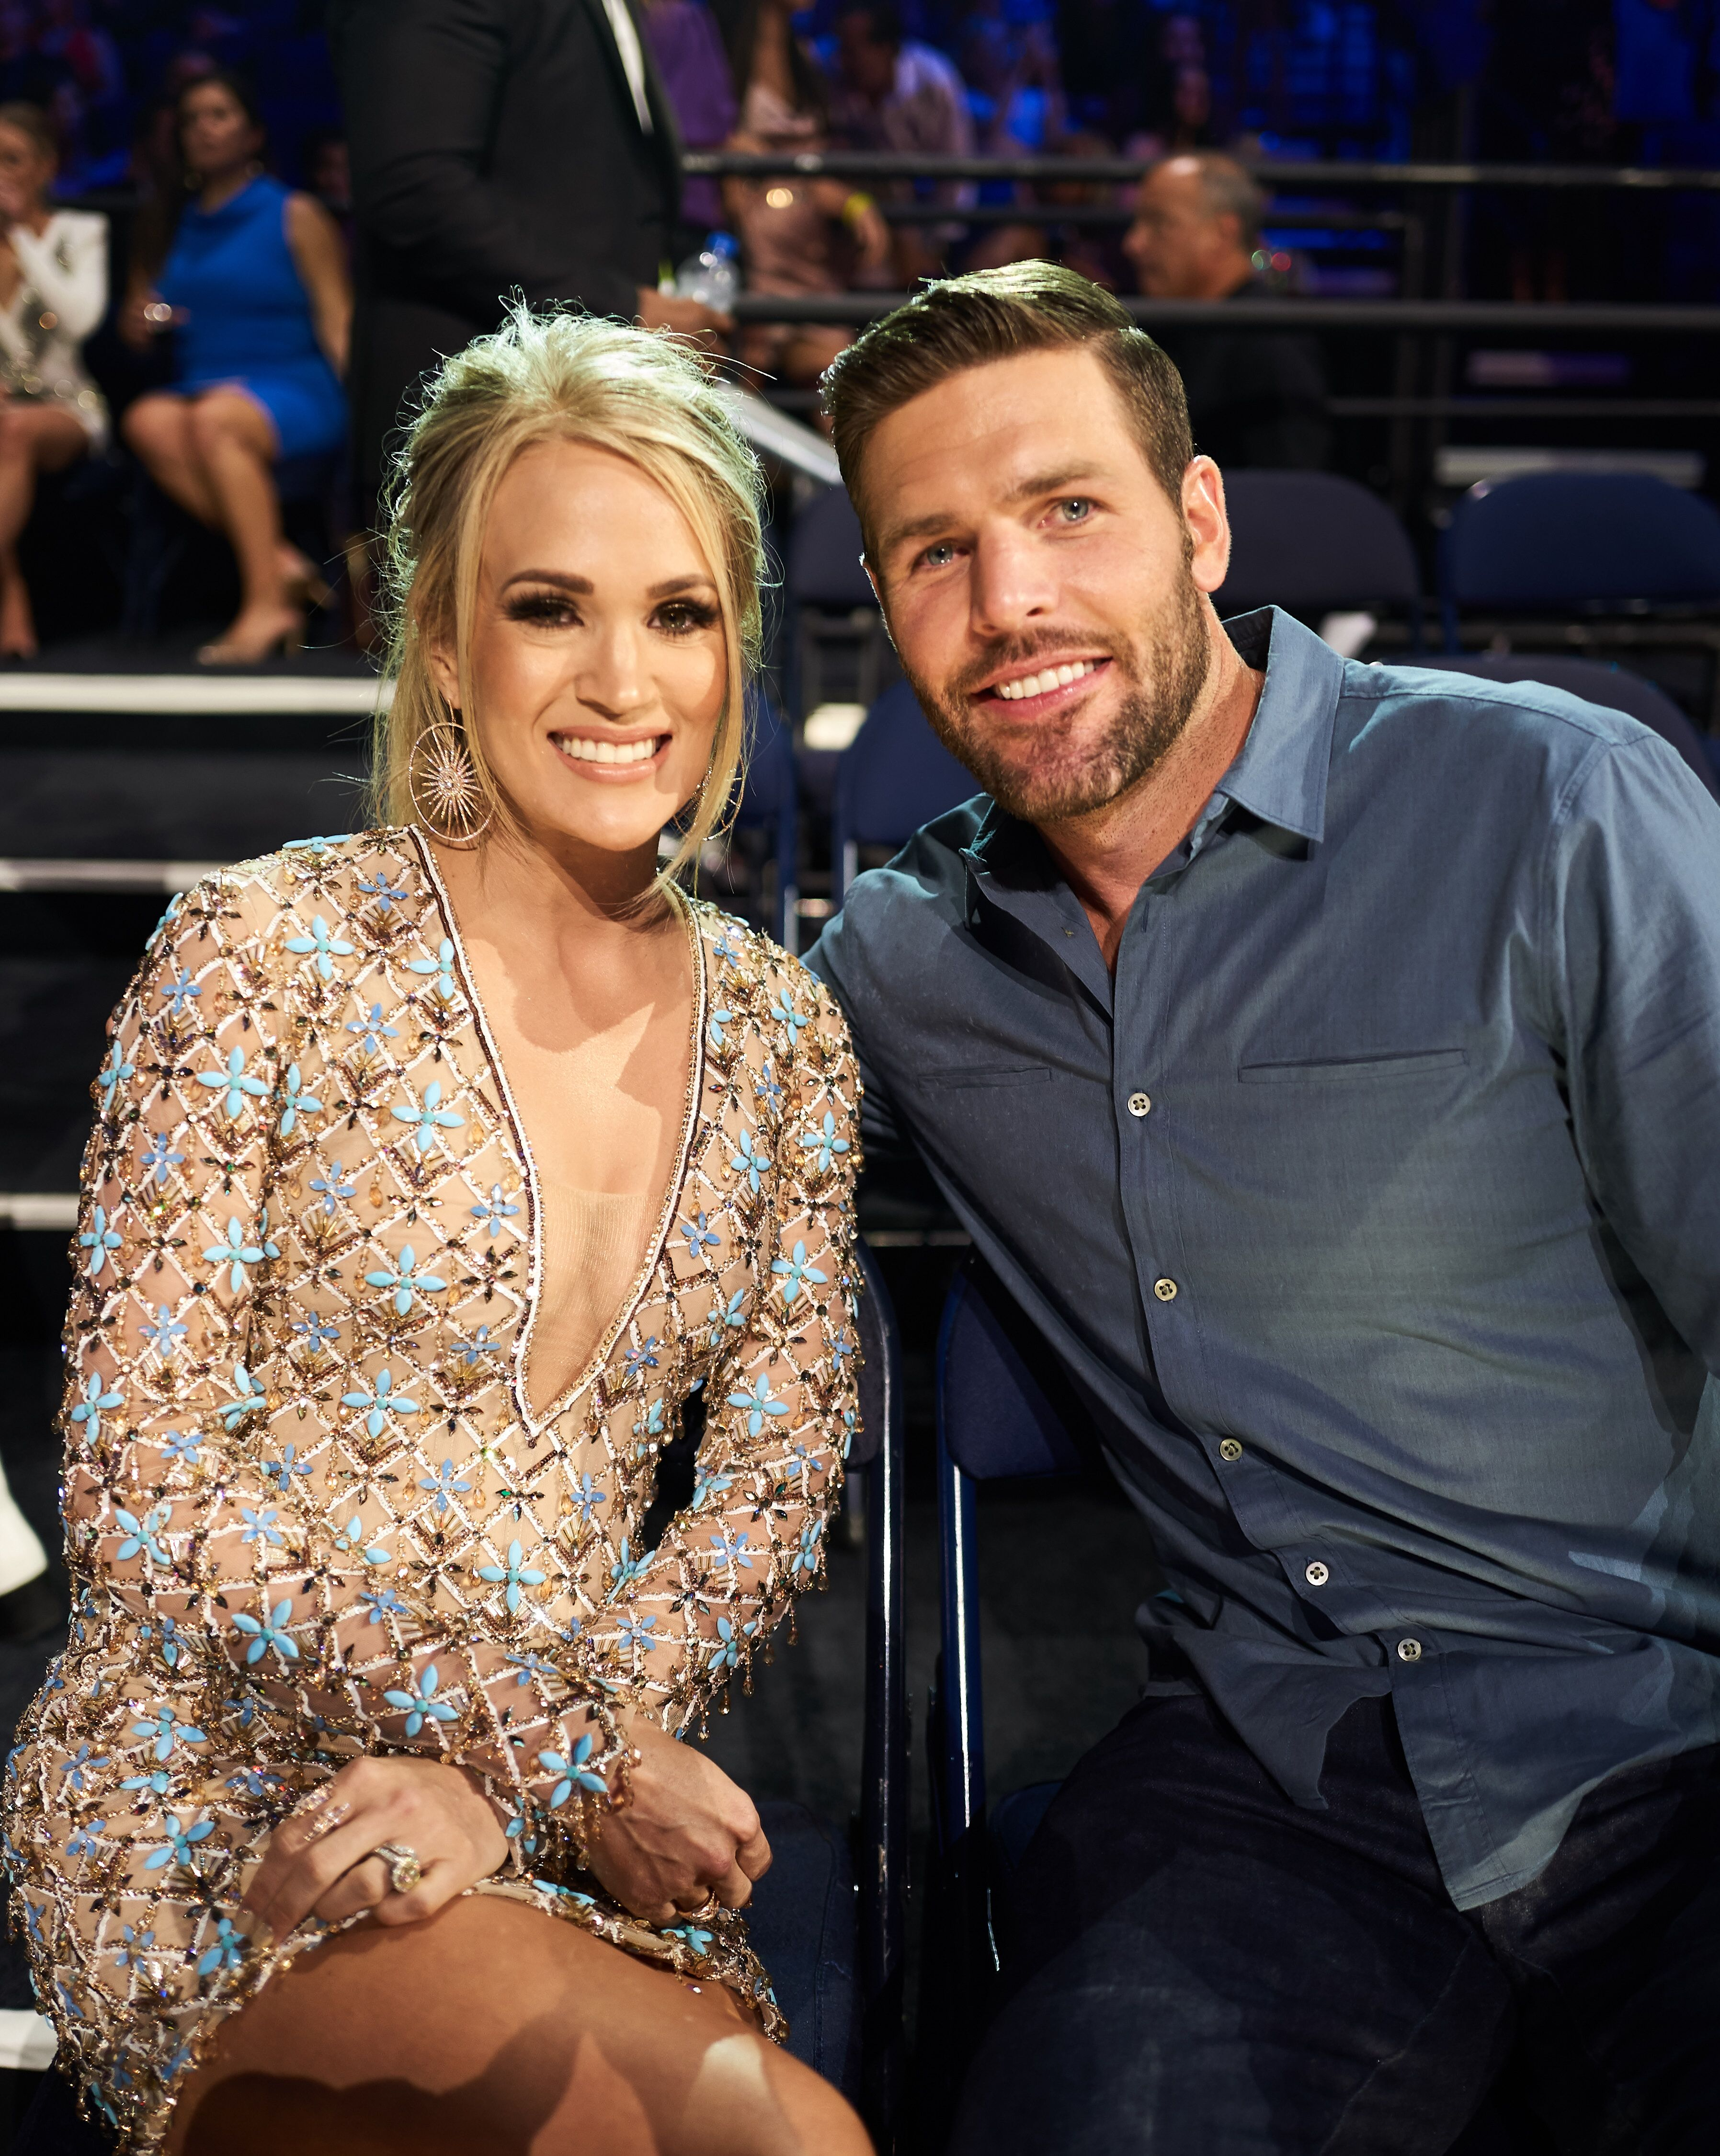 Carrie Underwood and Mike Fisher at the CMT Music Awards on June 05, 2019, in Nashville, Tennessee | Photo: Getty Images